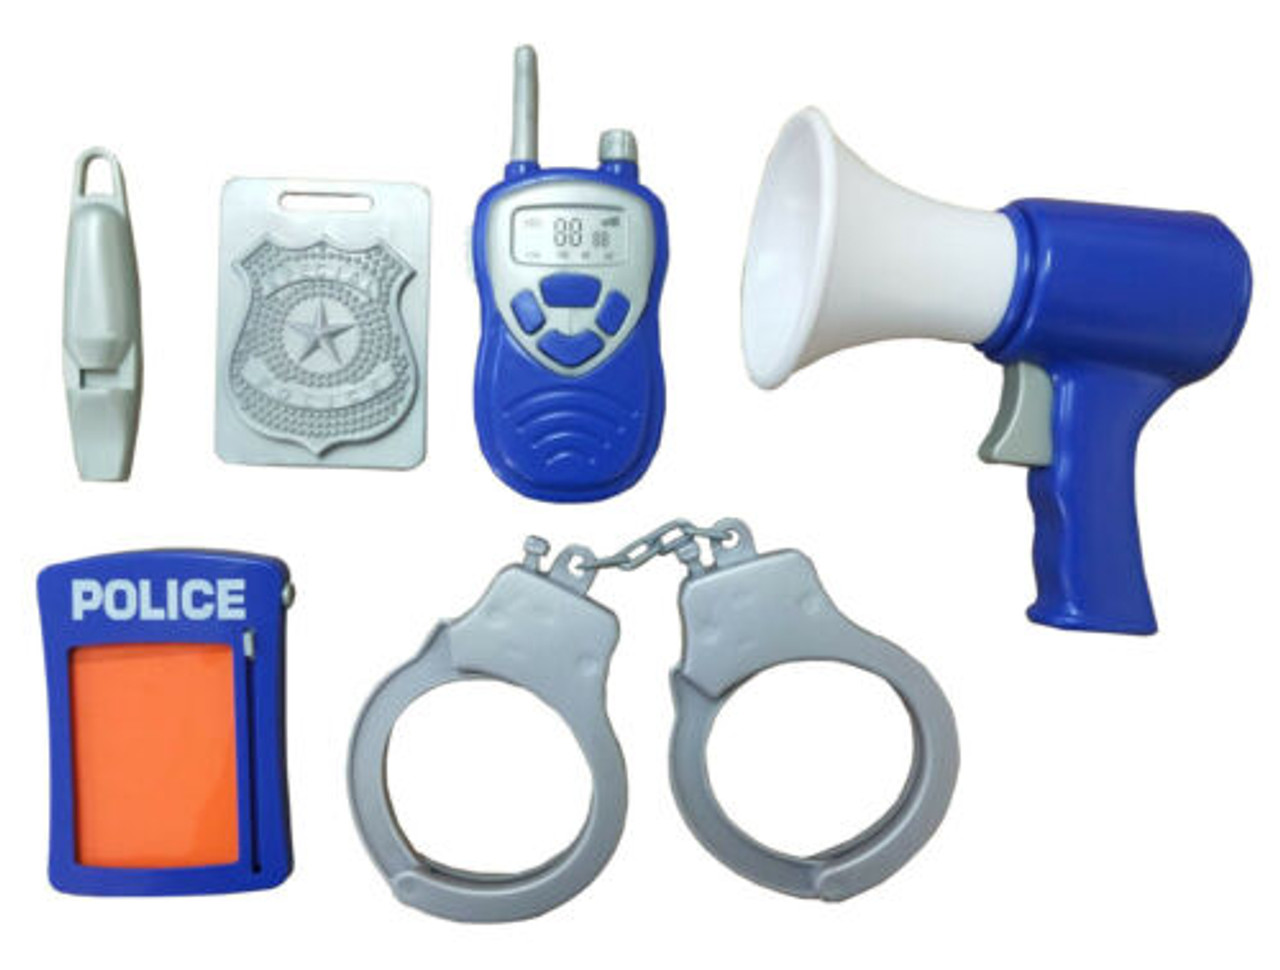 Deluxe Police Kit In Case at Baby Barn Discounts Does your little one love fighting crime and restoring justice? This police kit is the perfect addition to any crime fighters costume box!